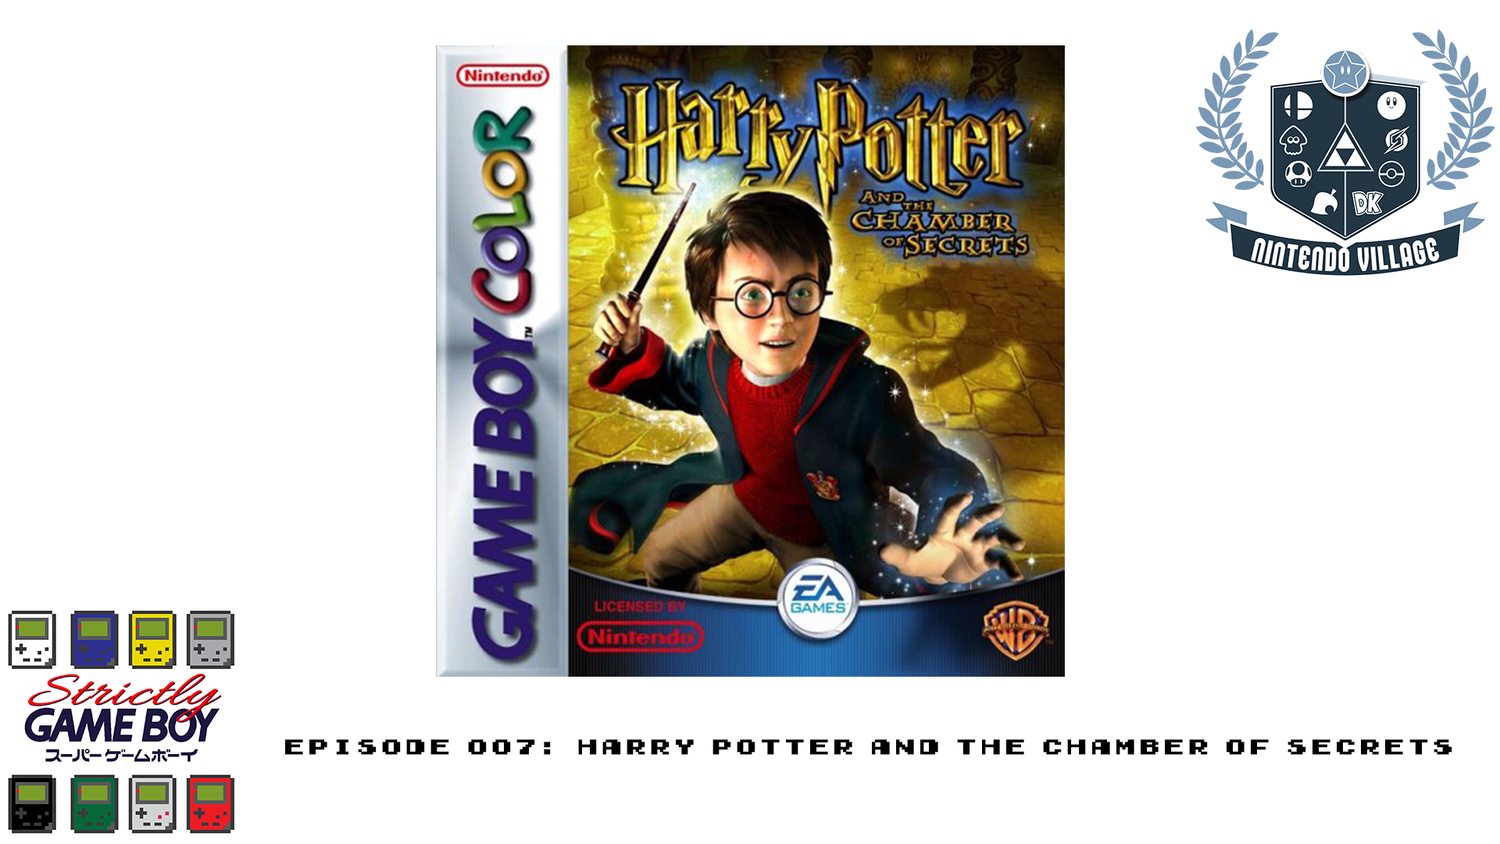 Episode 007: Harry Potter and the Chamber of Secrets